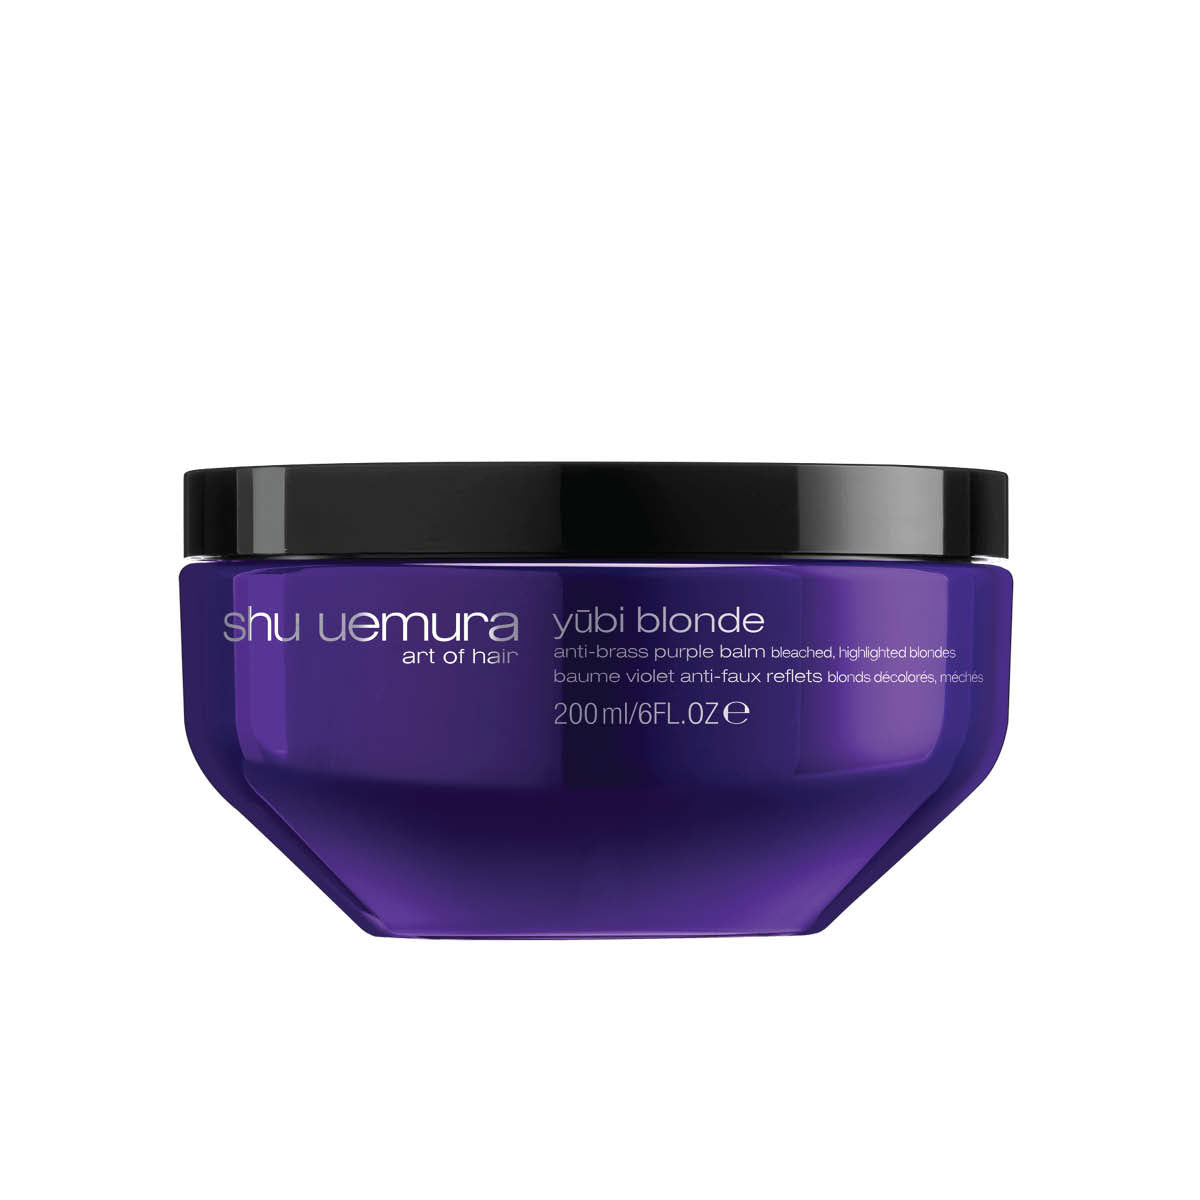 Shu Uemura Yūbi Blonde Anti-brass Purple Mask